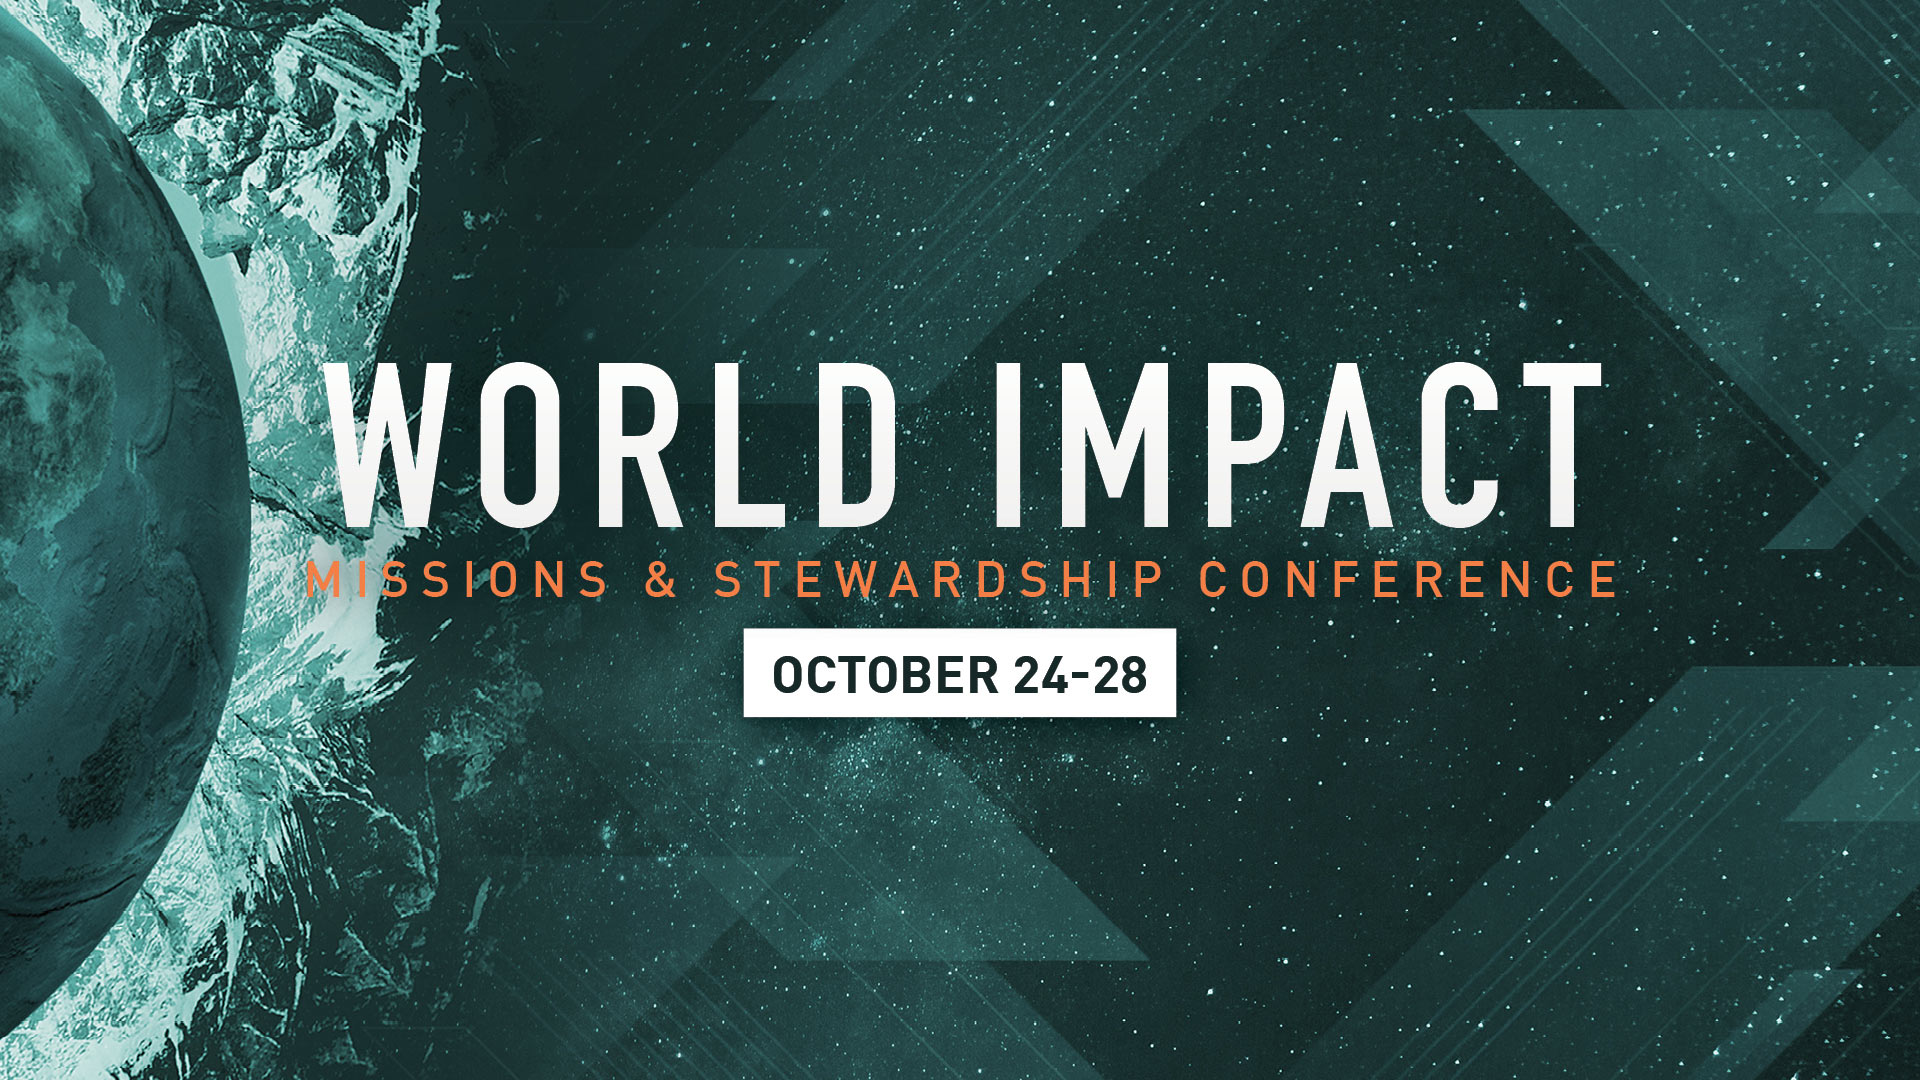 World Impact Conference 2020